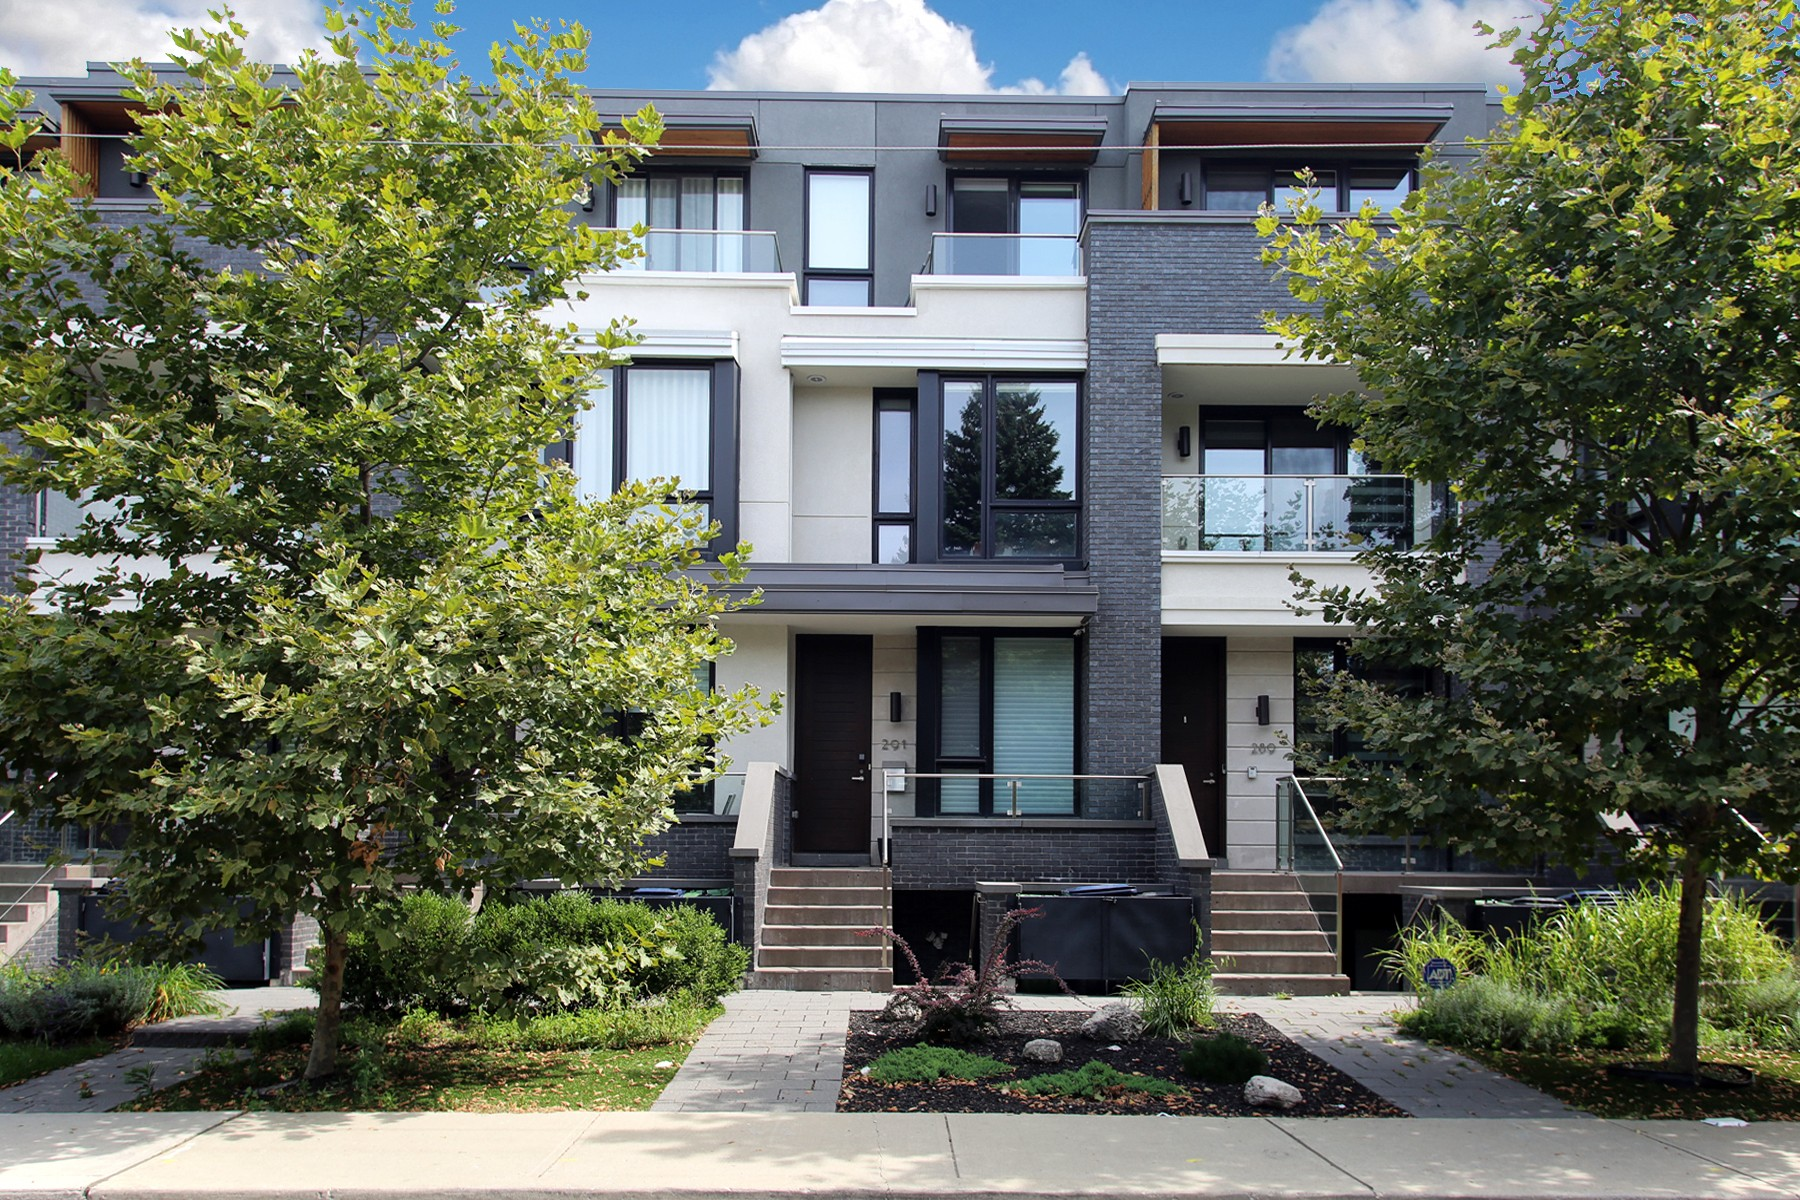 3 Bedroom Townhouse at Roxton Road